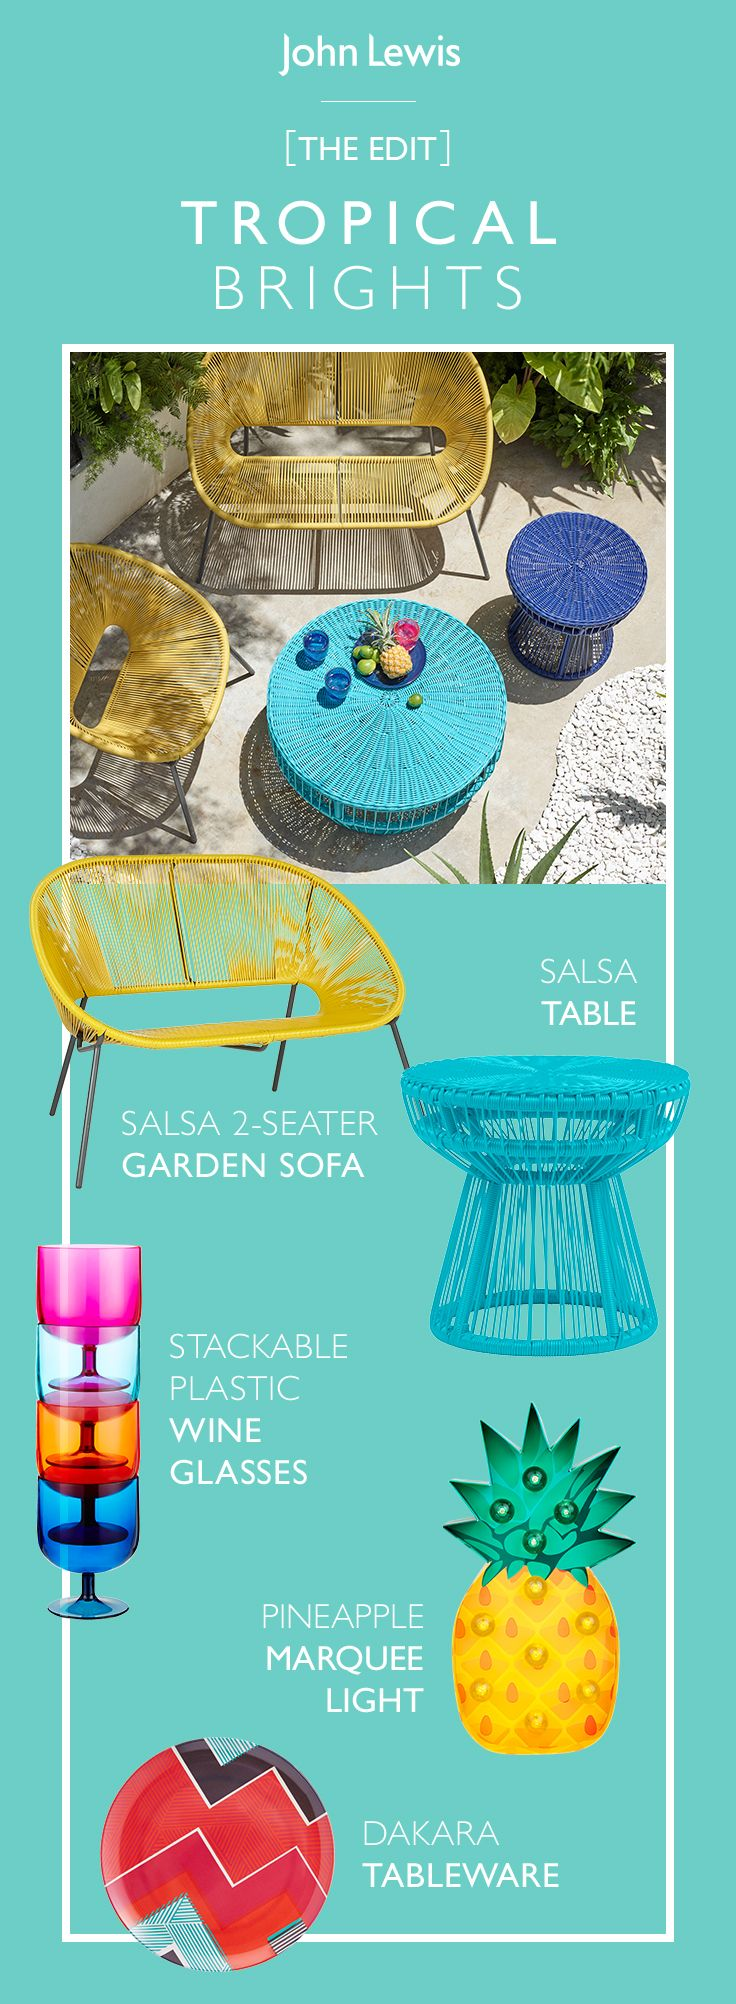 This month's EDIT embraces fun in the sun with playful prints in hothouse hues, party must-haves and everything you need for alfresco entertaining. Introduce pops of colour and striking designs to your summer lounging with John Lewis Salsa furniture that's perfect for small-space dining at any time of day. Illuminate your home and garden with everything from cheerful pineapples to colour-popping bulbs to create a memorable party atmosphere.